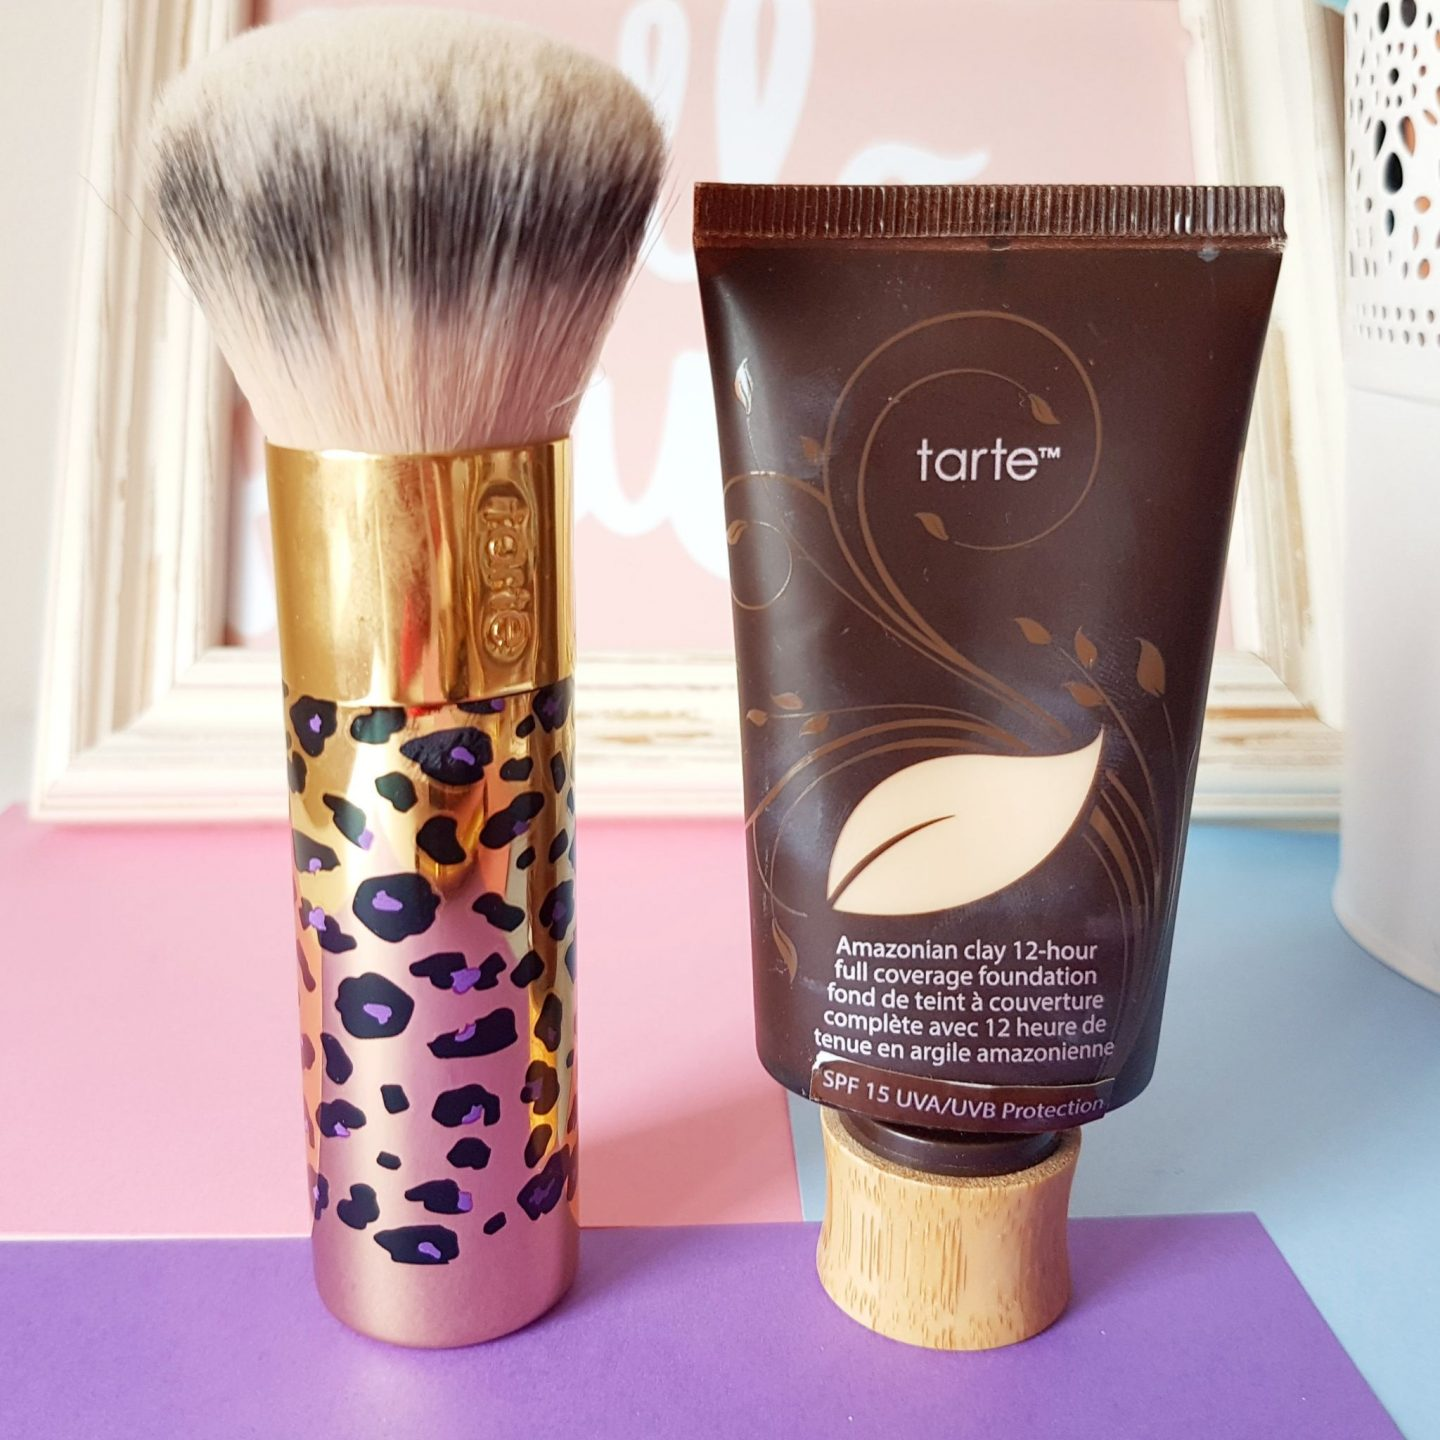 The Tarte Maneater Make-up Collection | Amazonian Clay Foundation